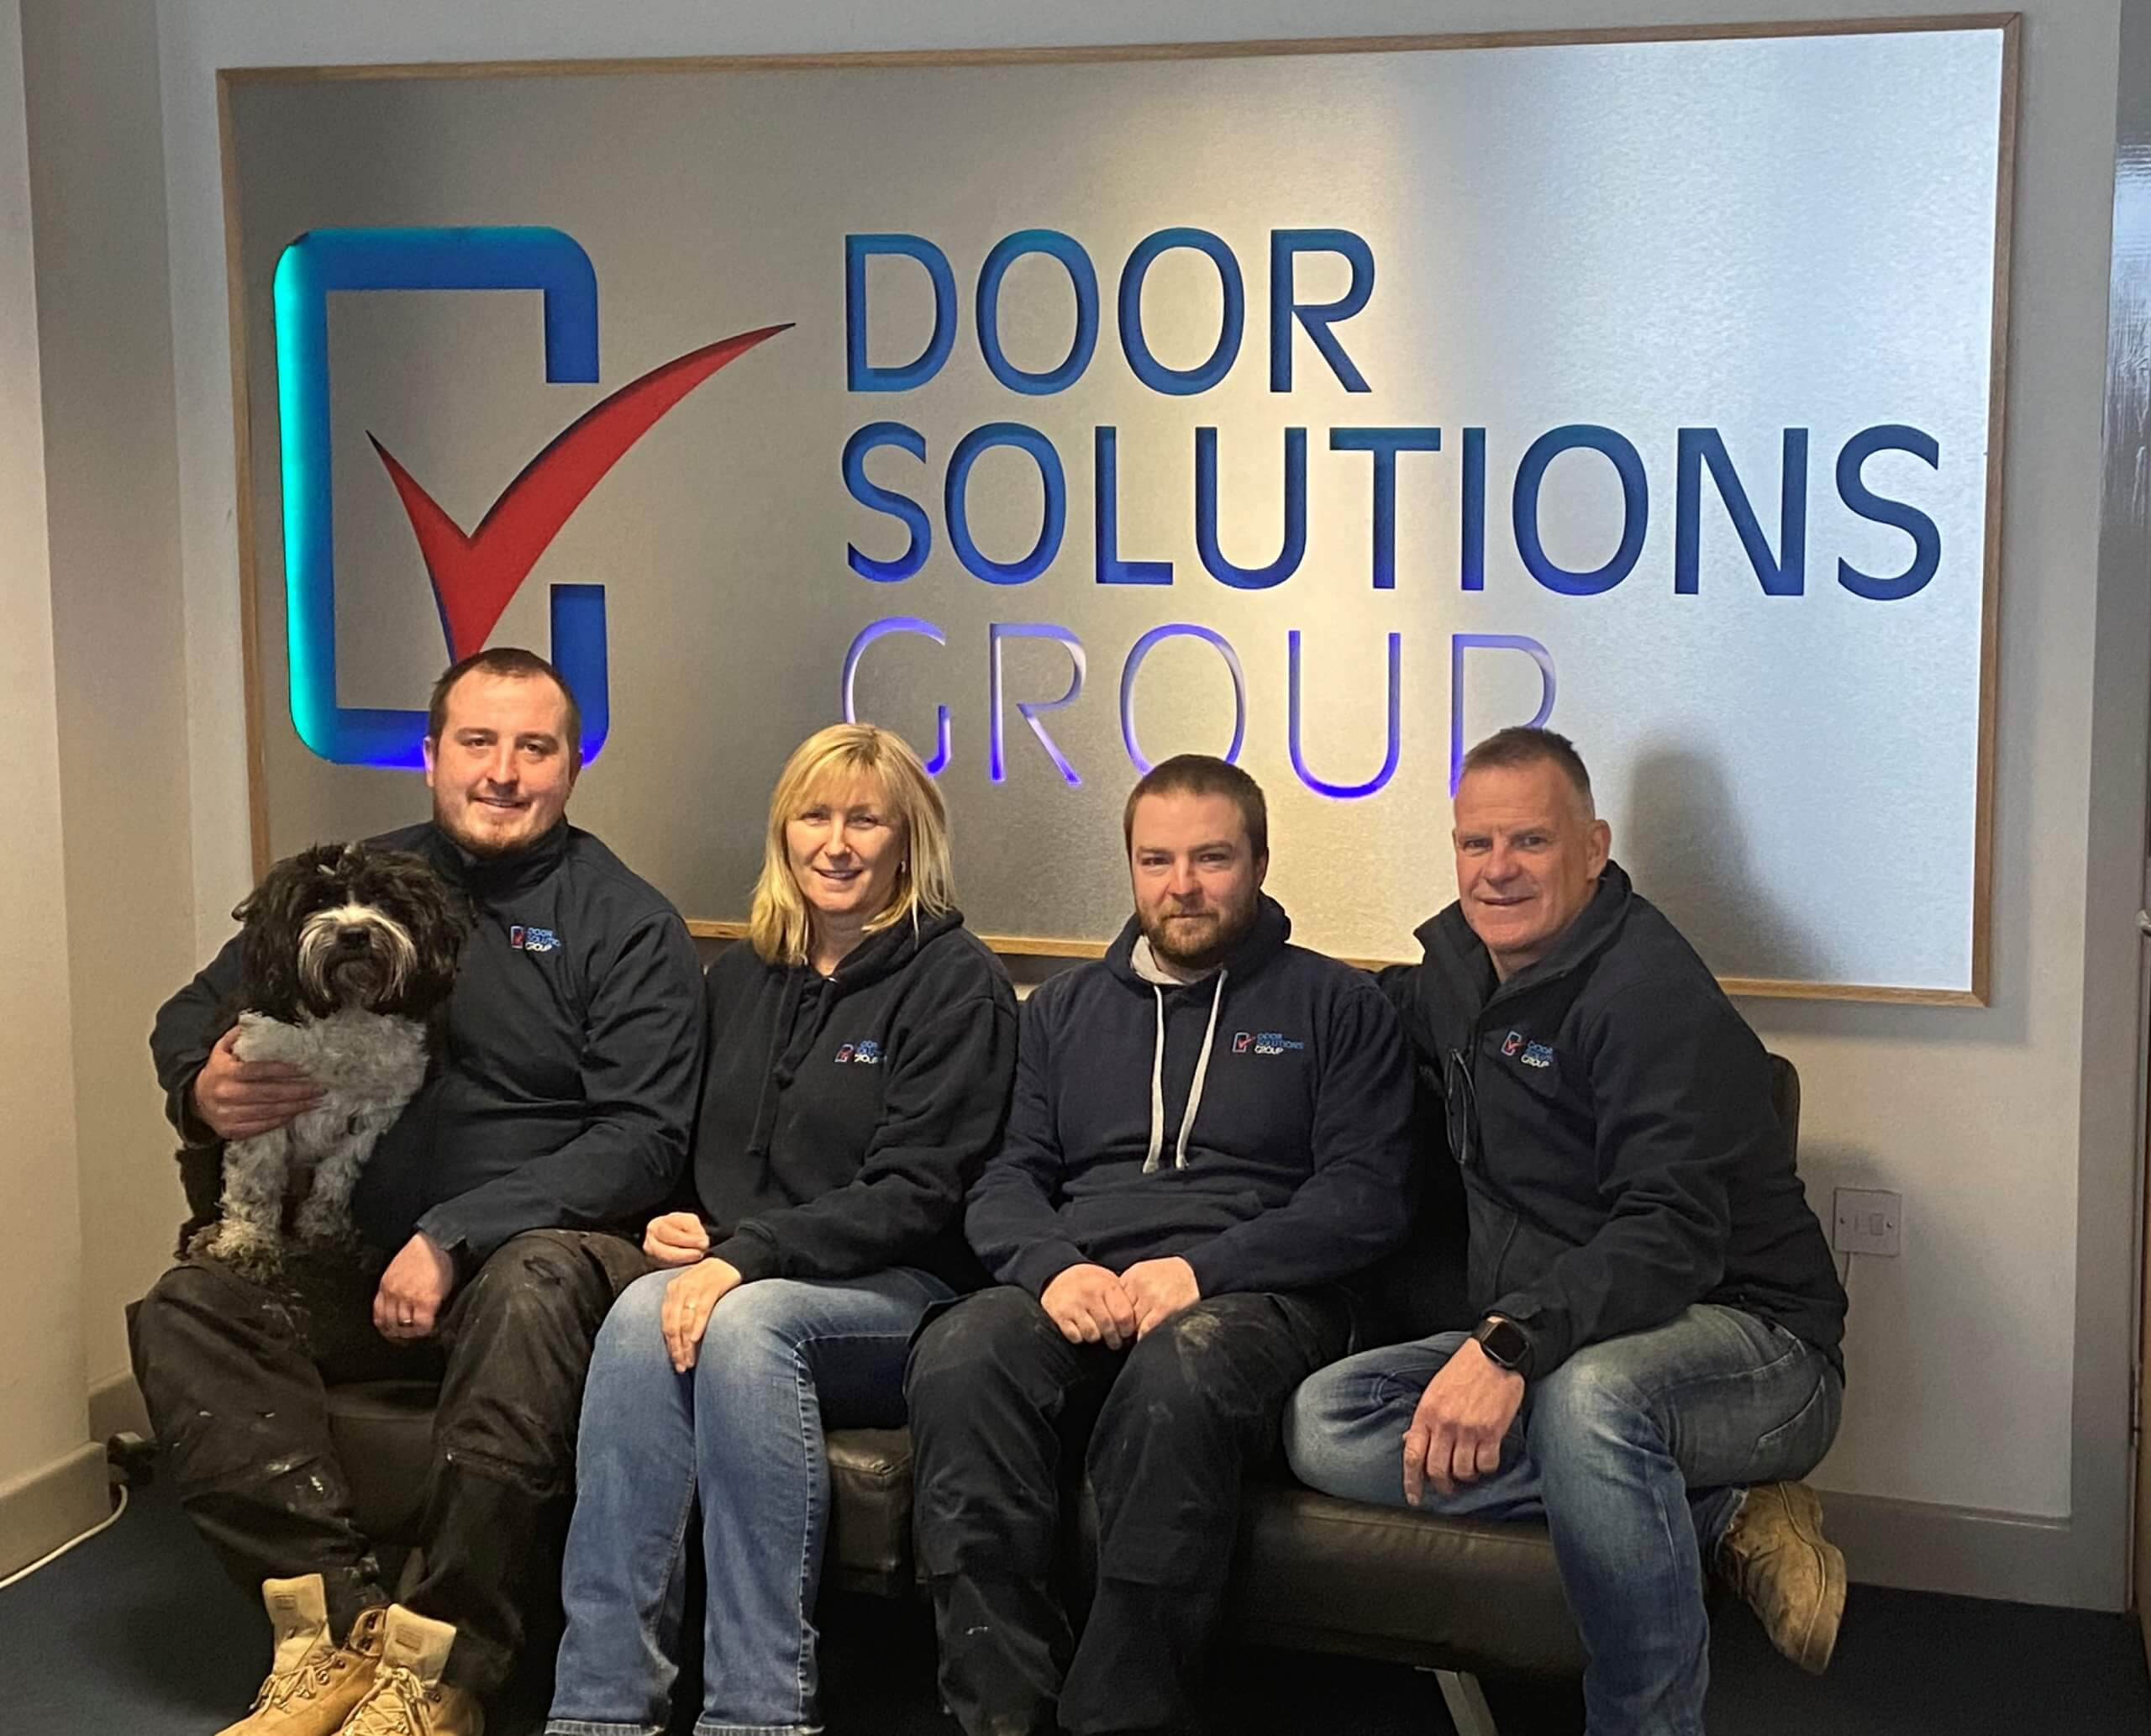 Barnsley fire door manufacturer invests in growth to chase £1m turnover